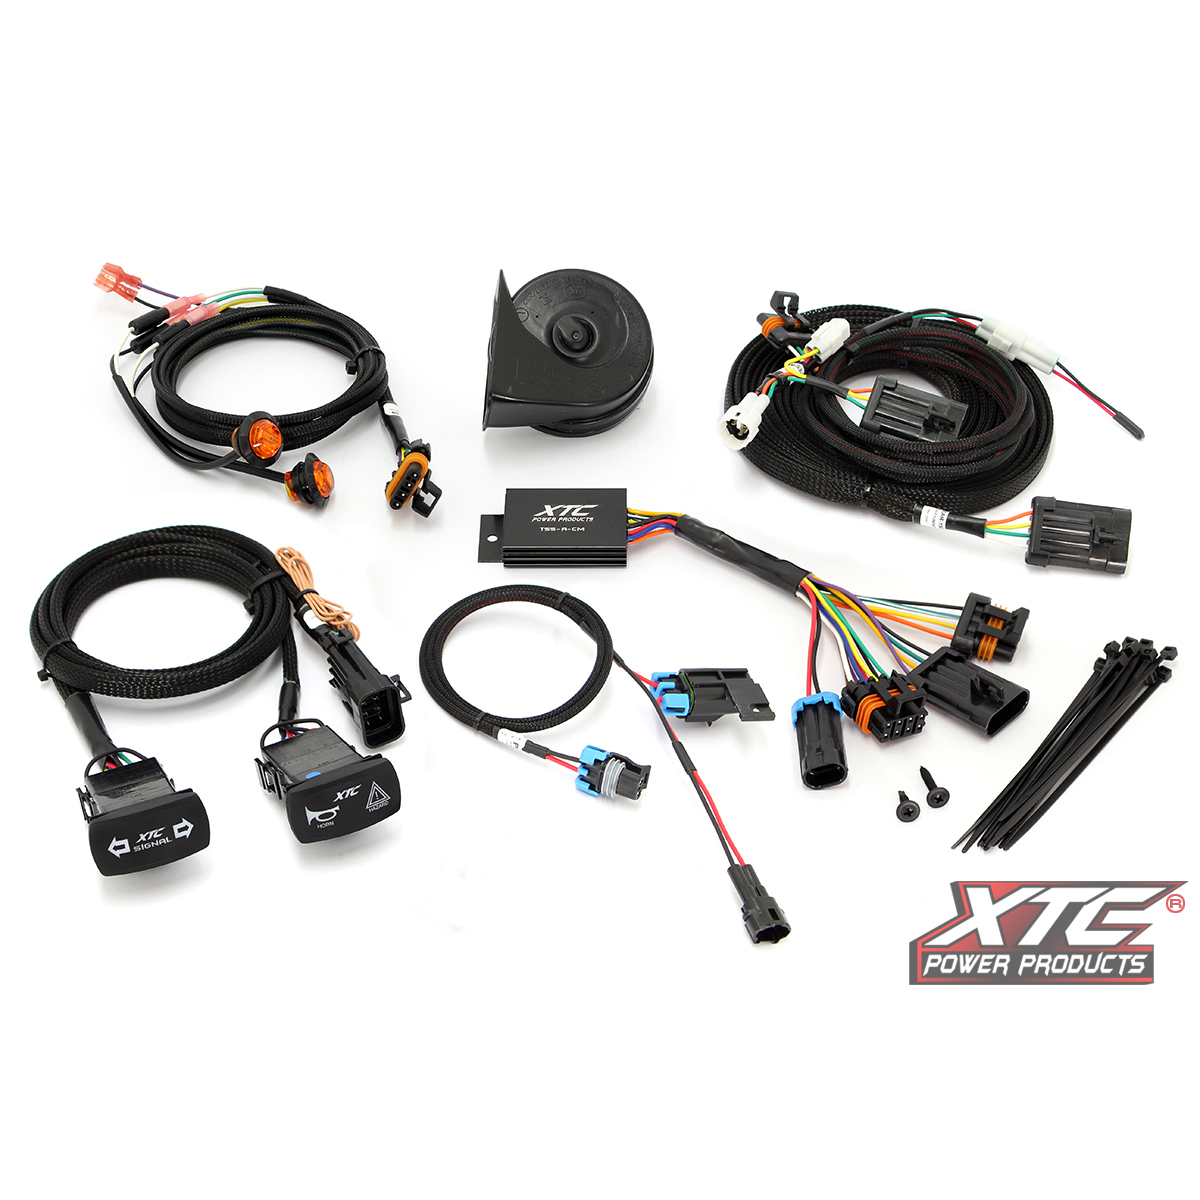 Yamaha Wolverine X2 / X4 Self Canceling Plug and Play Turn Signal System with Horn by XTC Motorsports